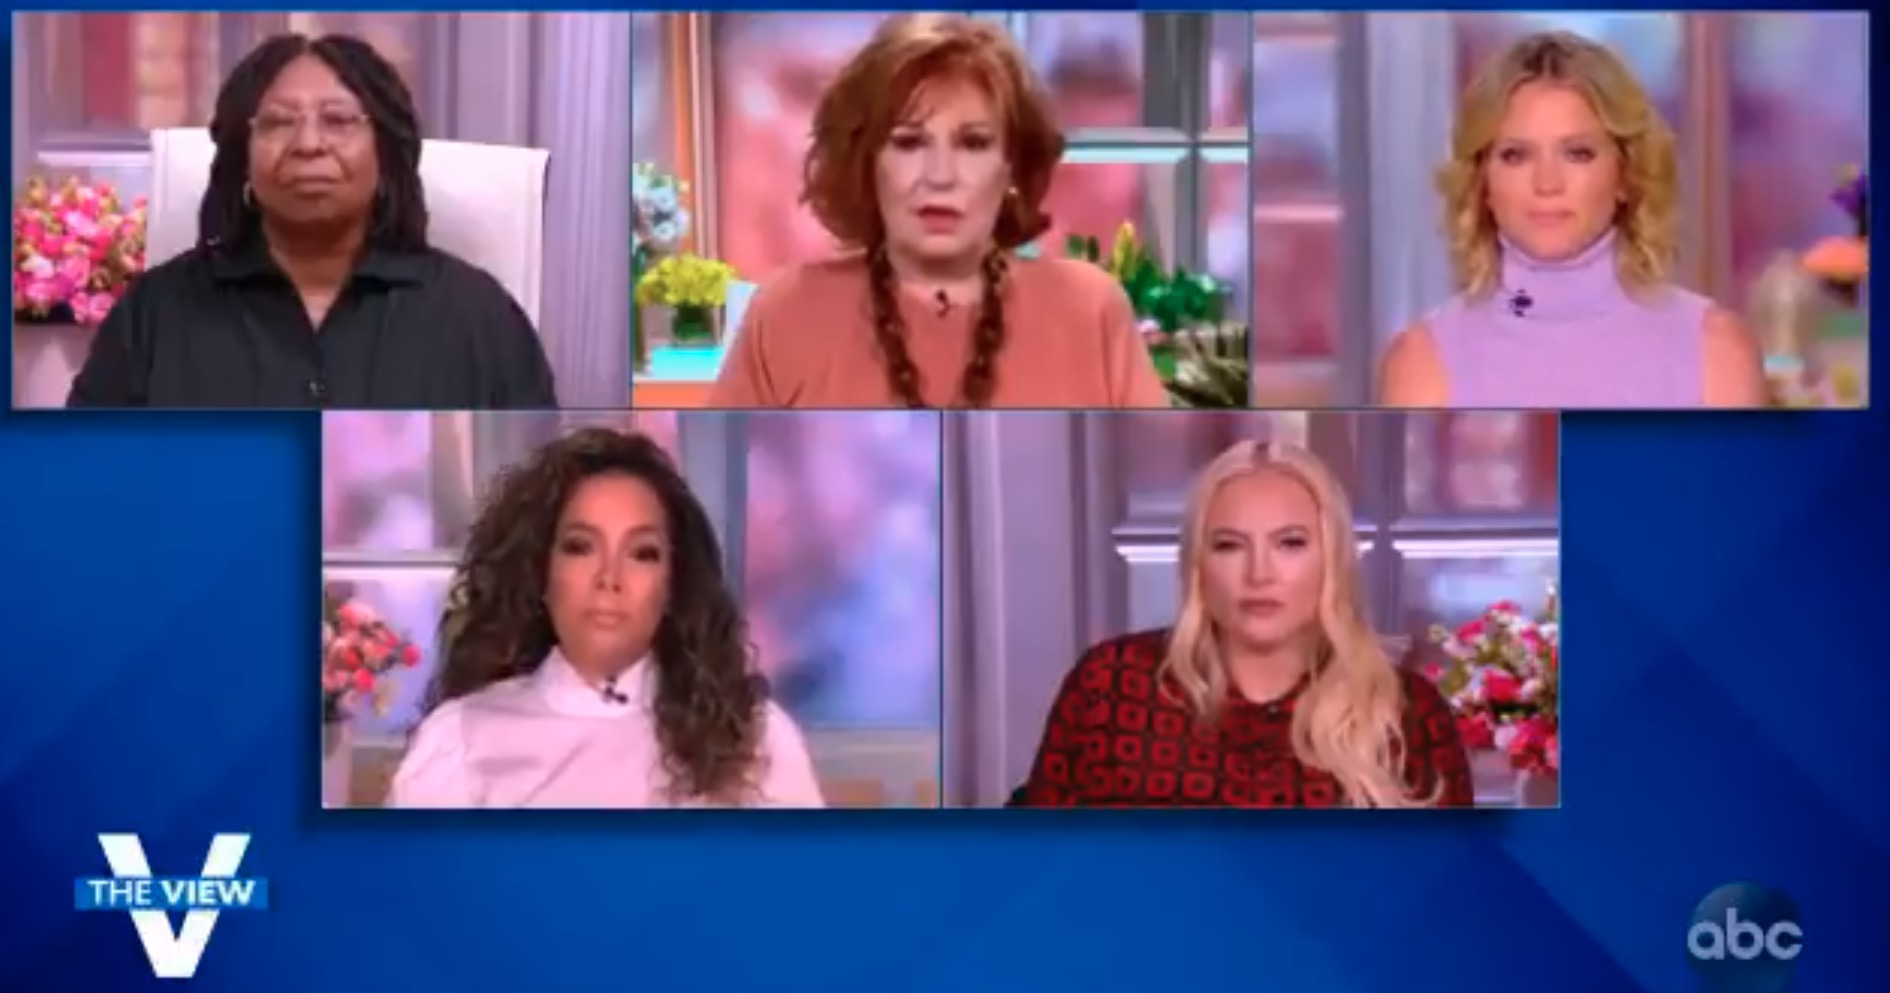 The hosts of the View in split screens